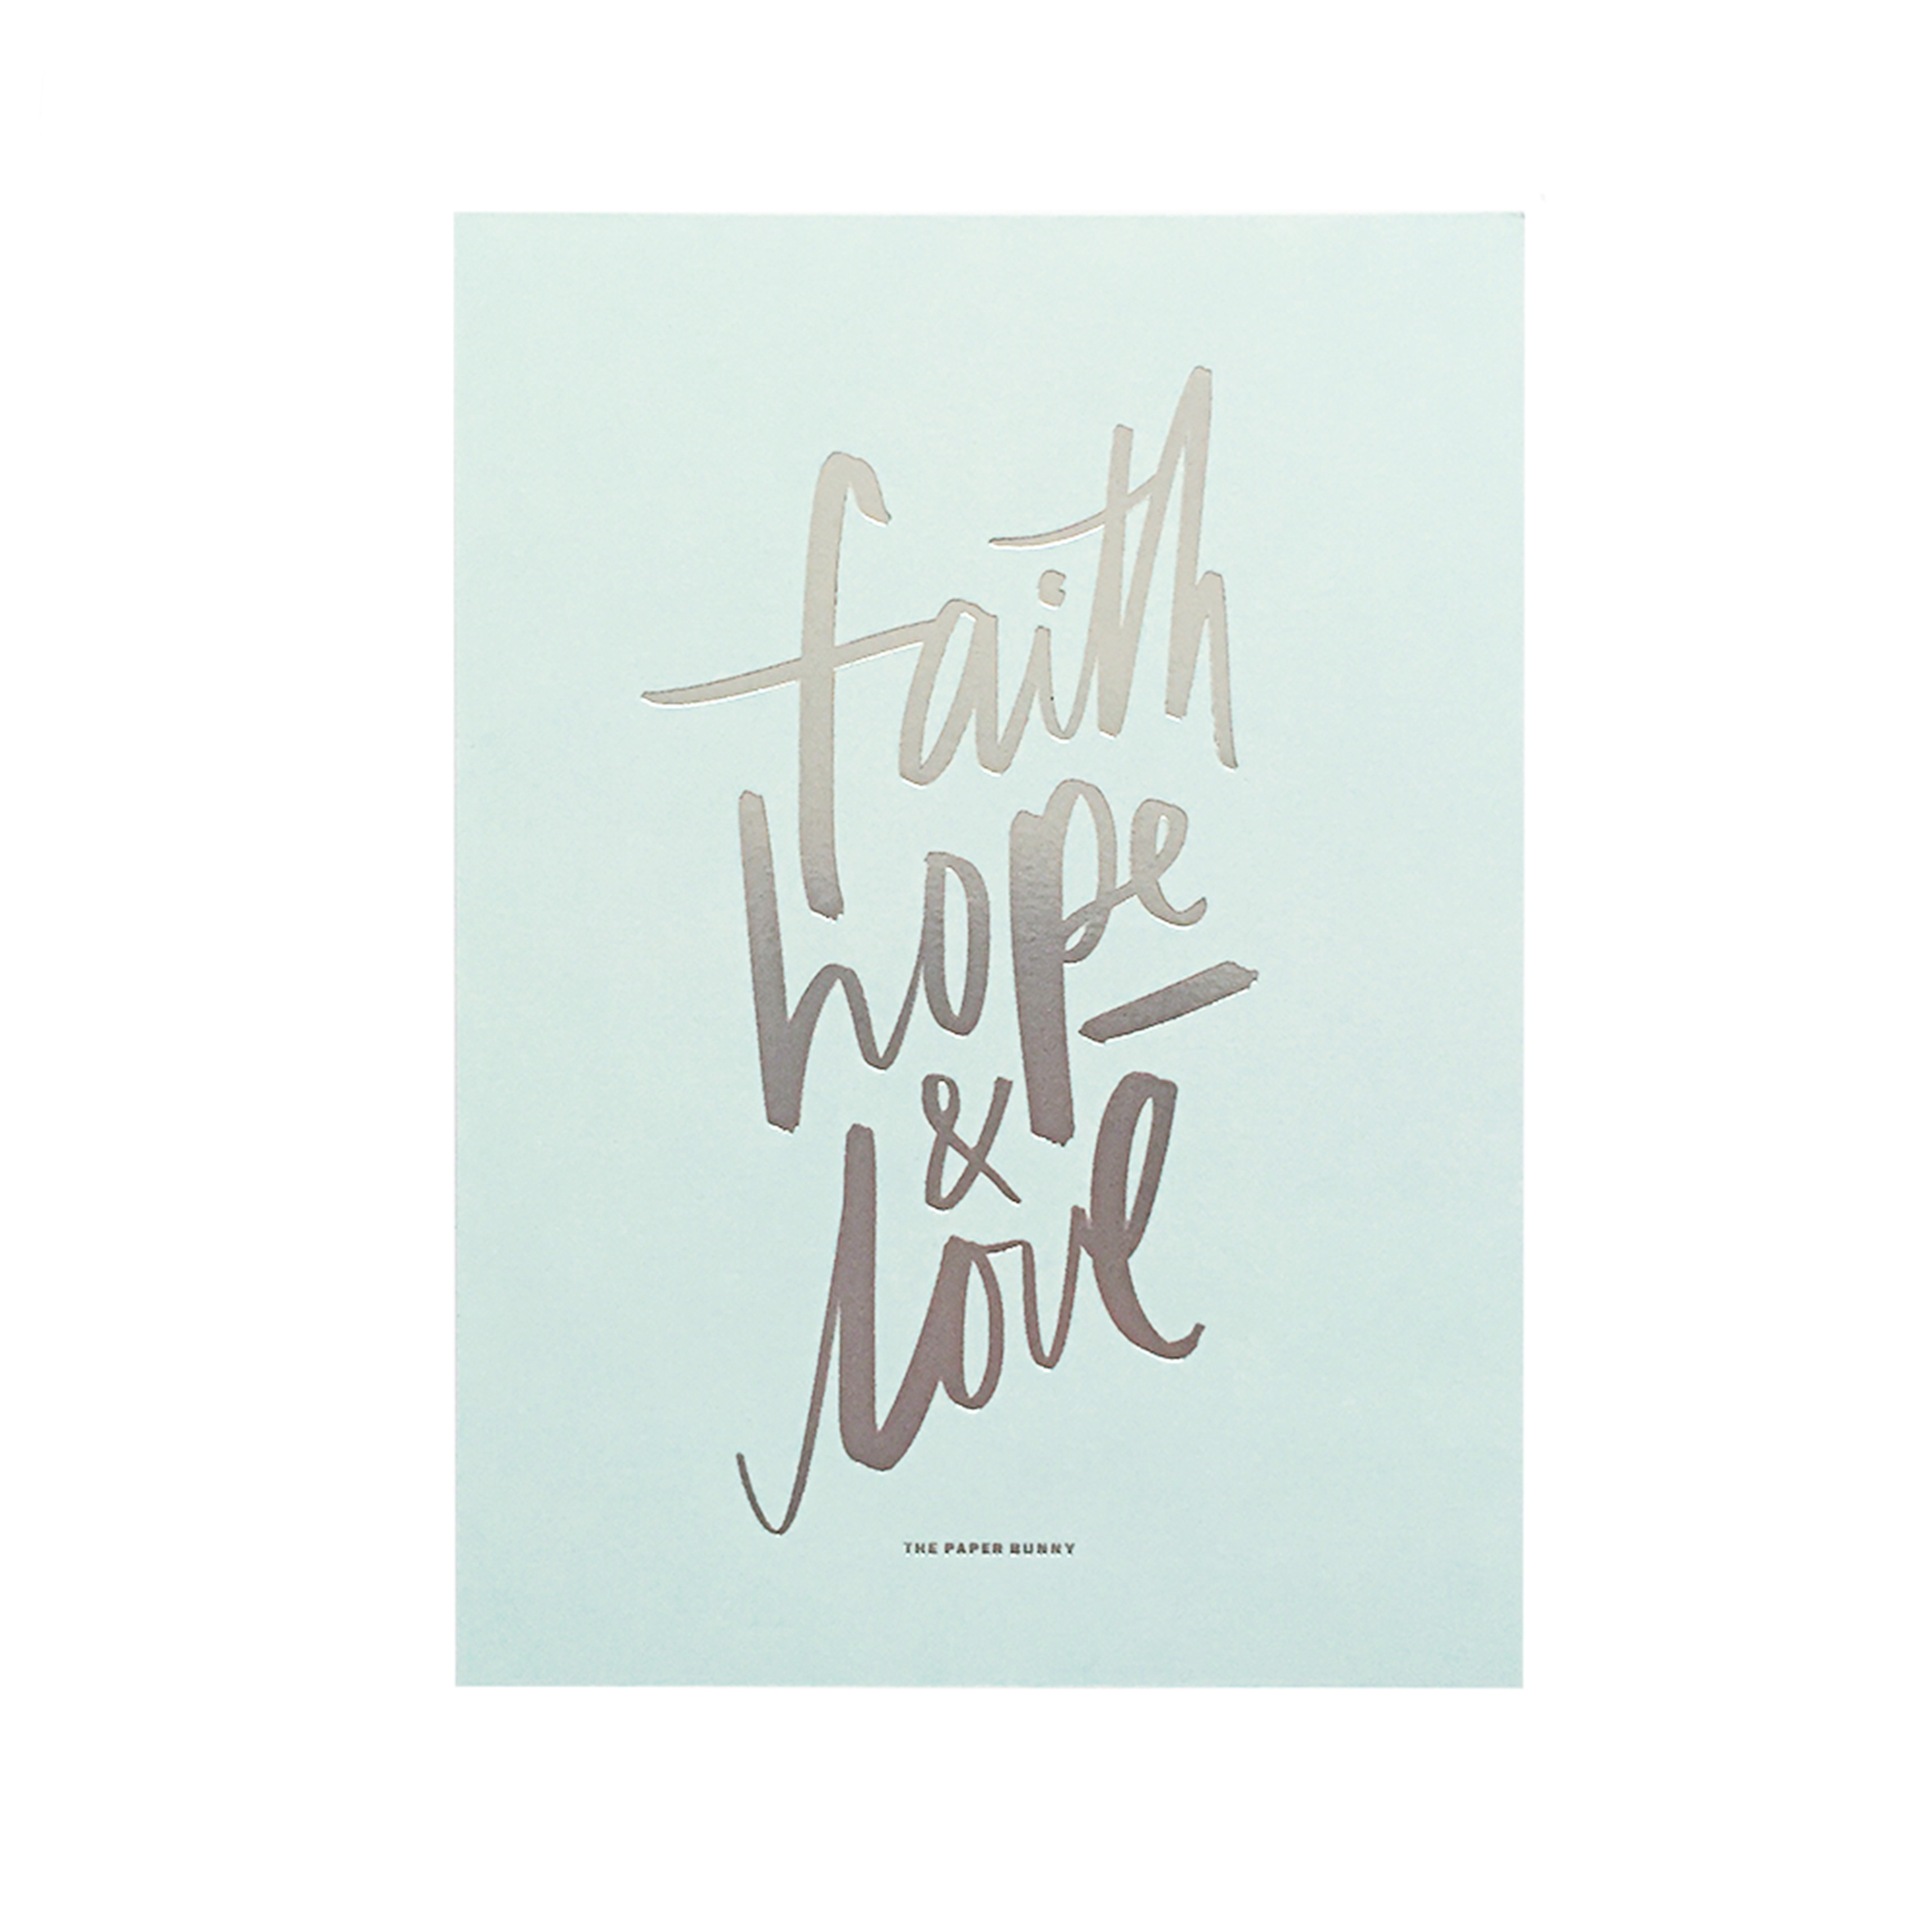 Bodacious Faith Hope Love Print Paper Bunny Faith Hope Love S Faith Hope Love Movie inspiration Faith Hope Love